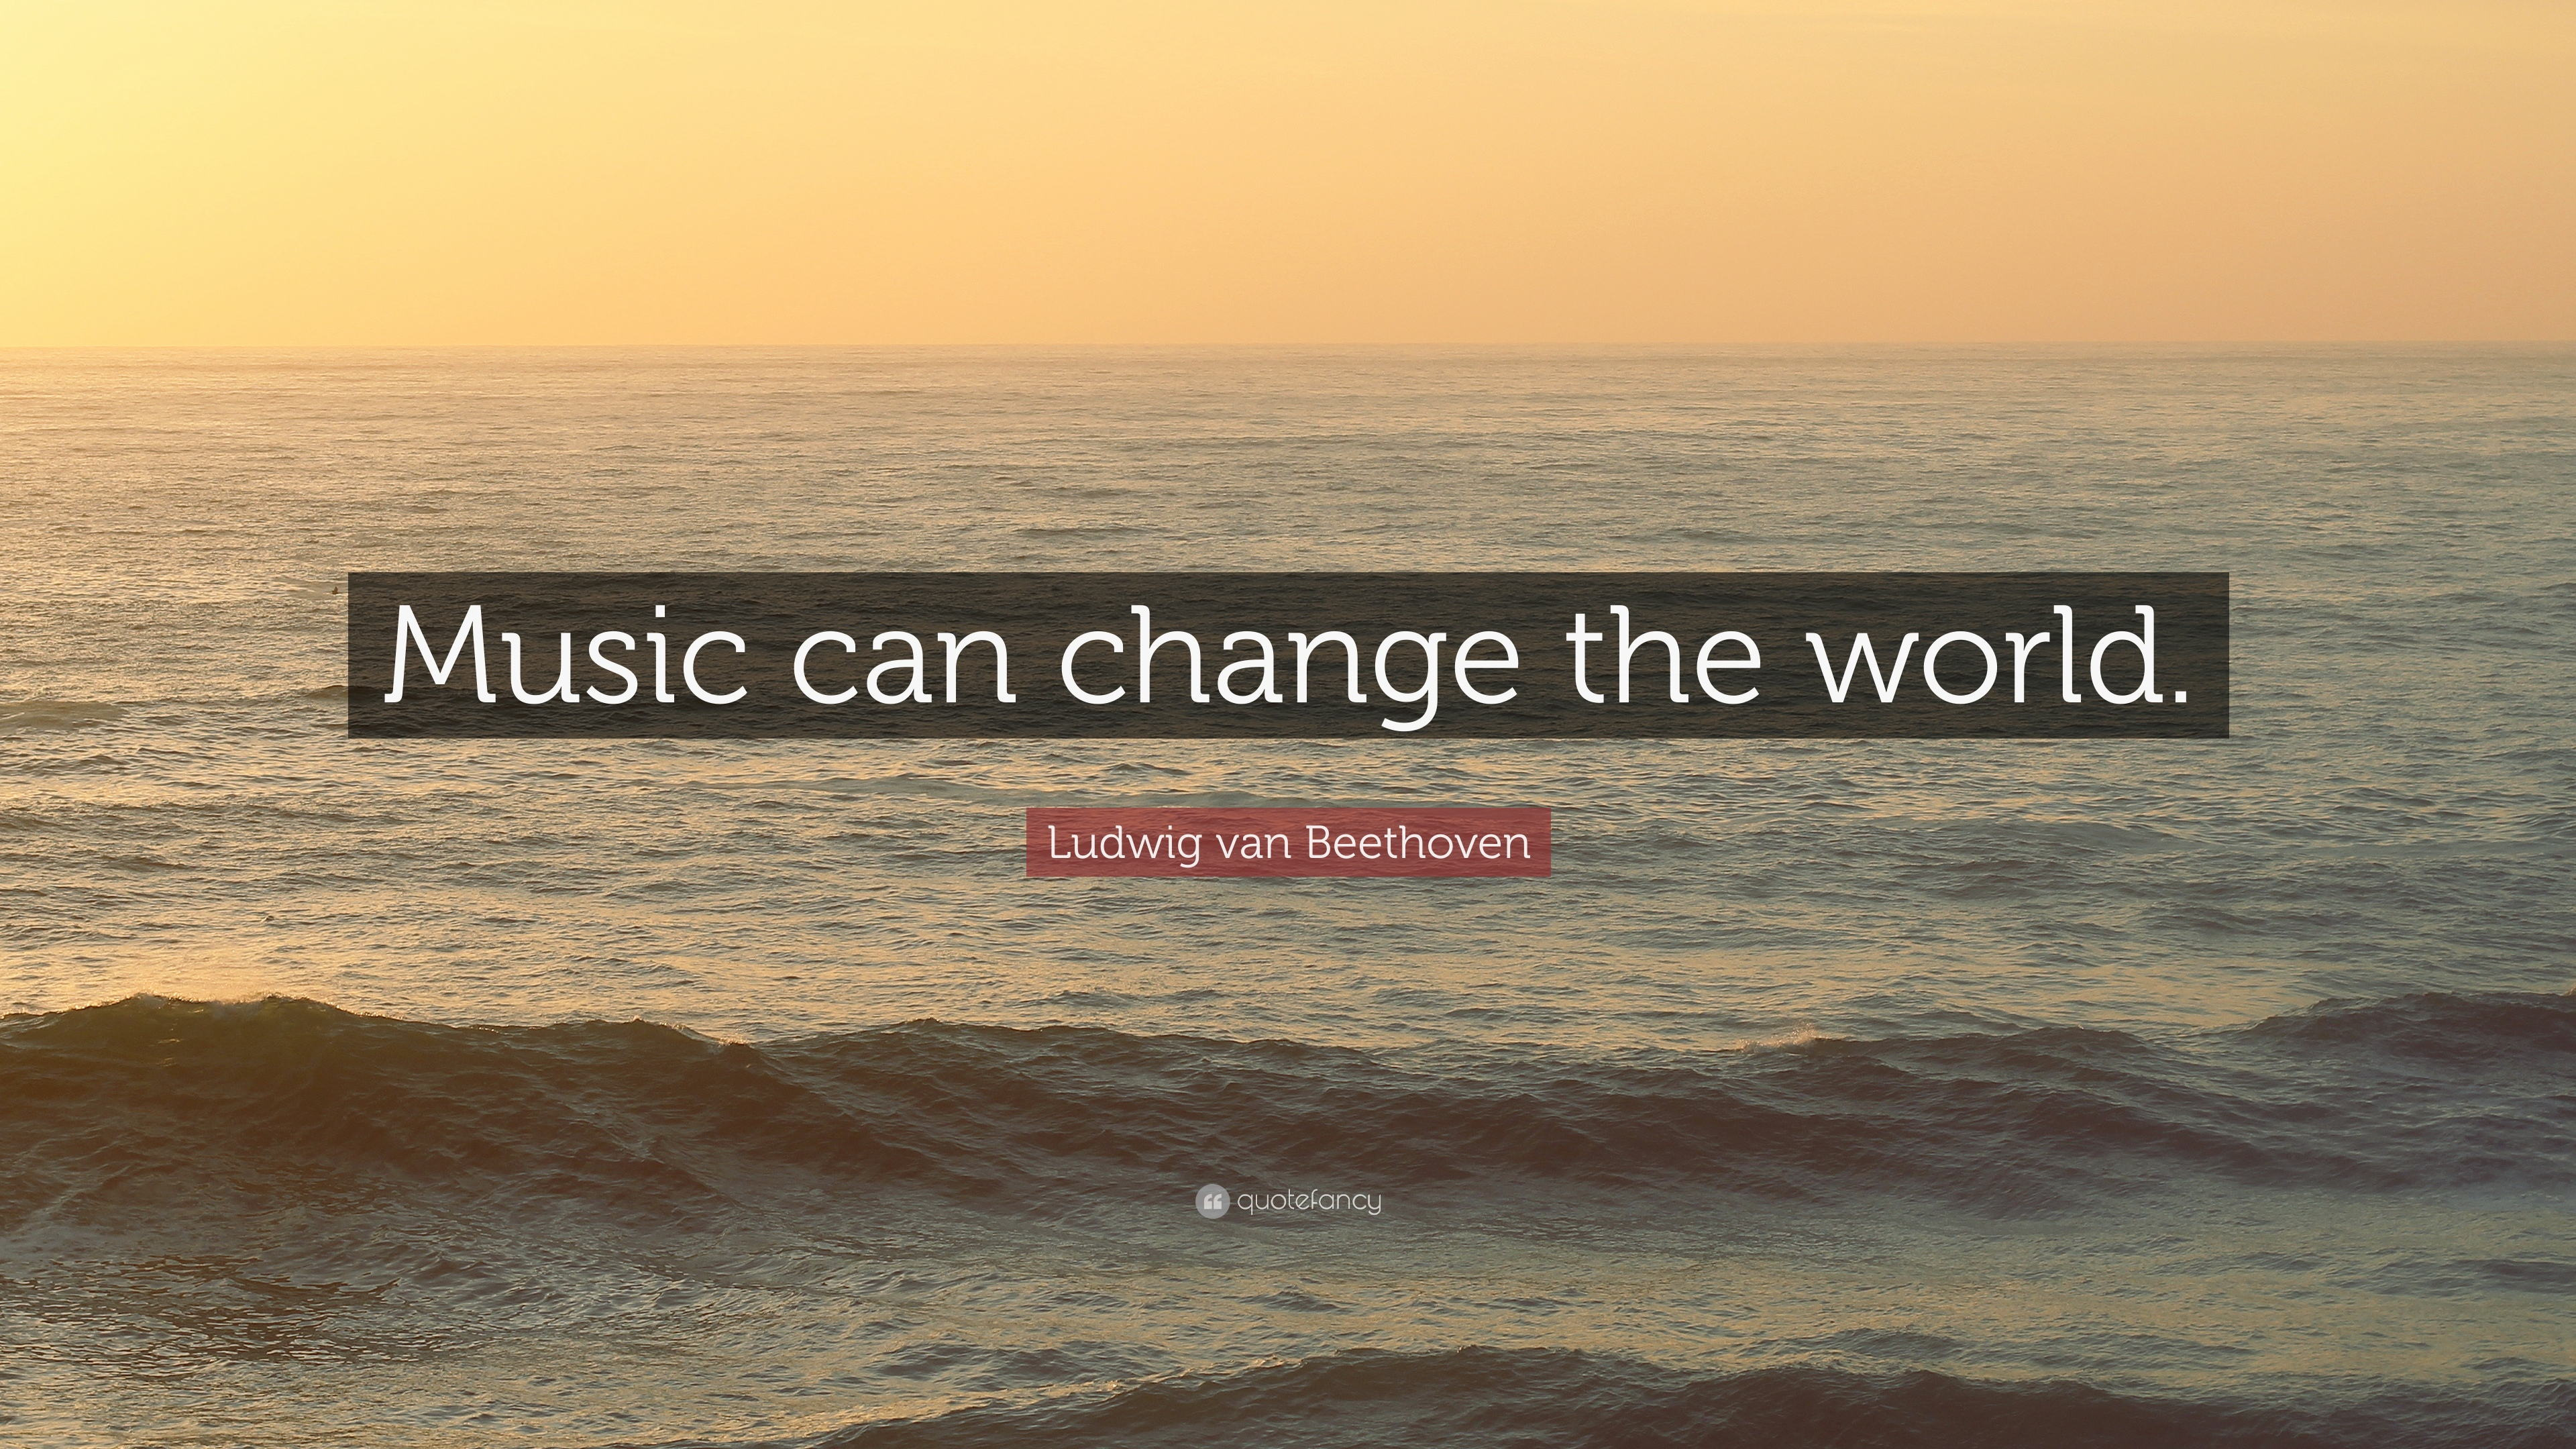 music can change the world quote beethoven